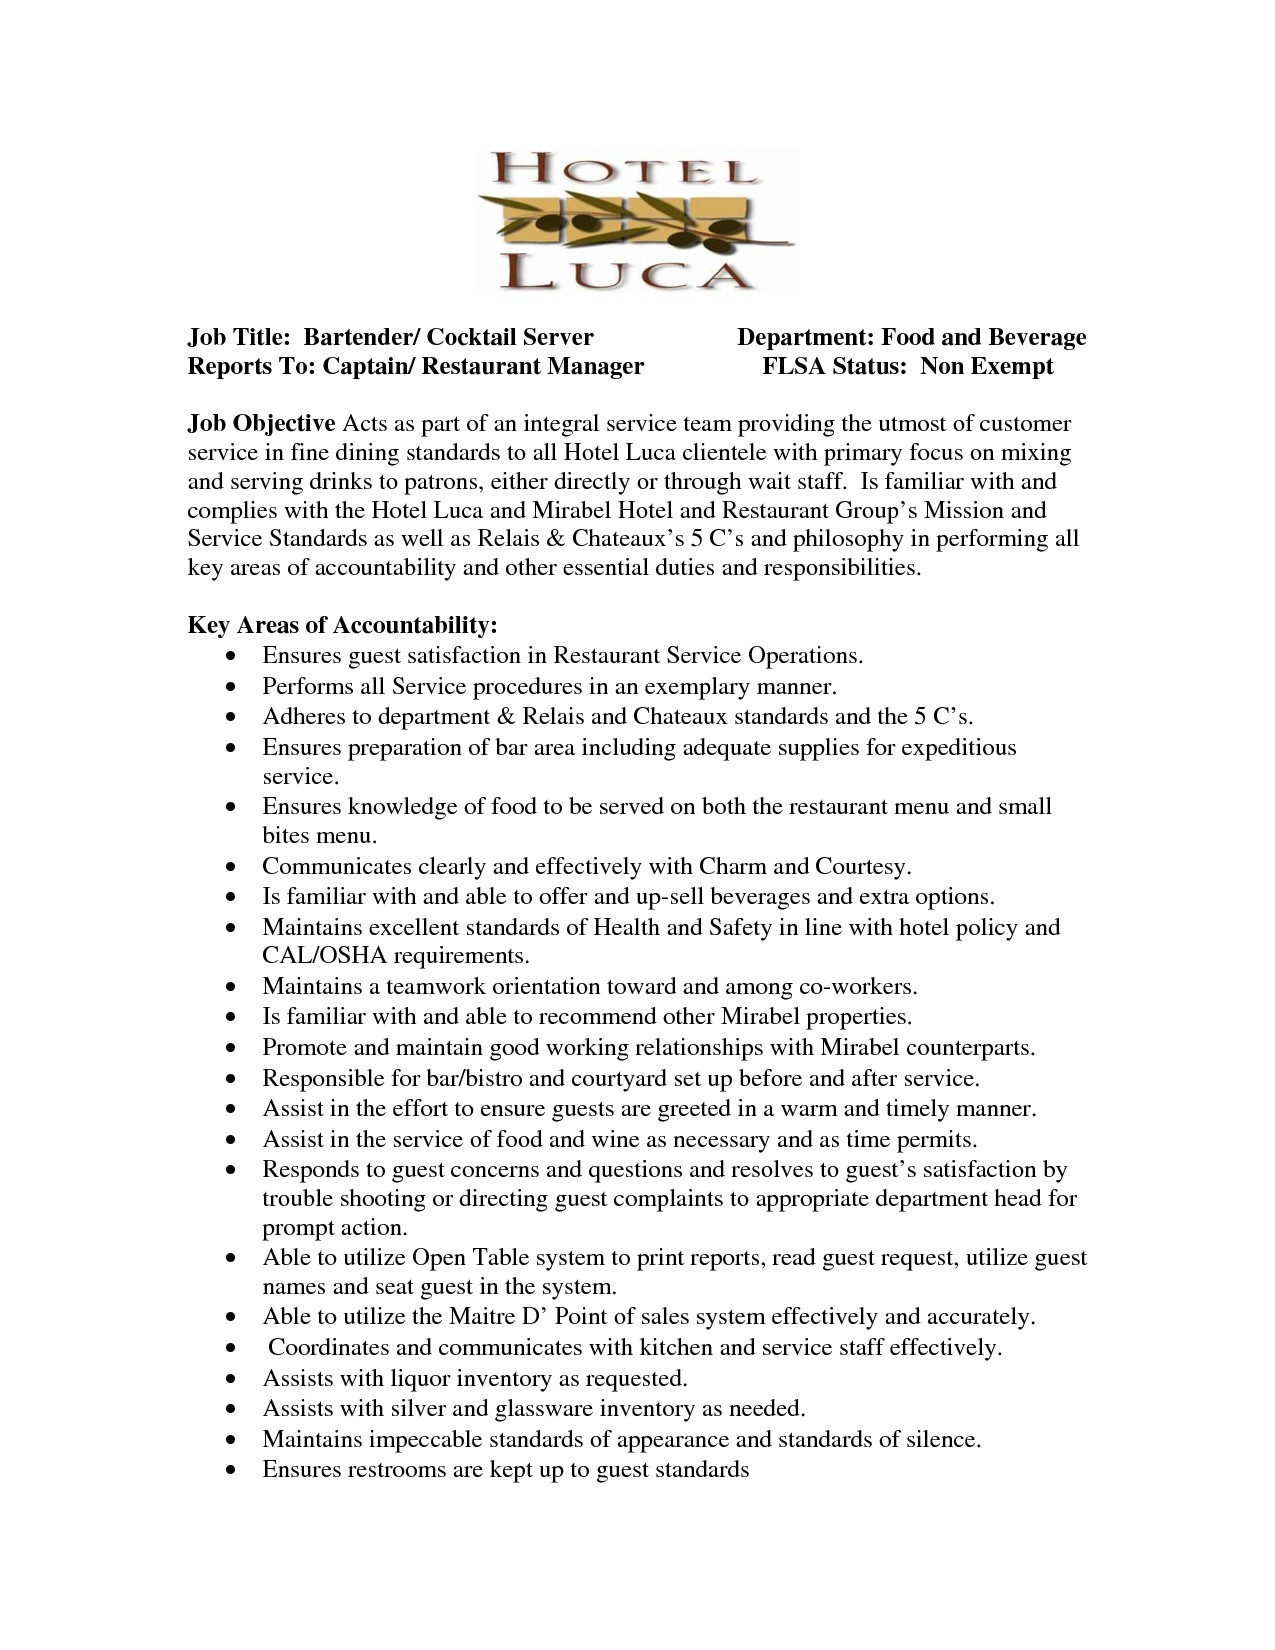 Food Server Job Description Resume - 17 Food Server Job Description for Resume